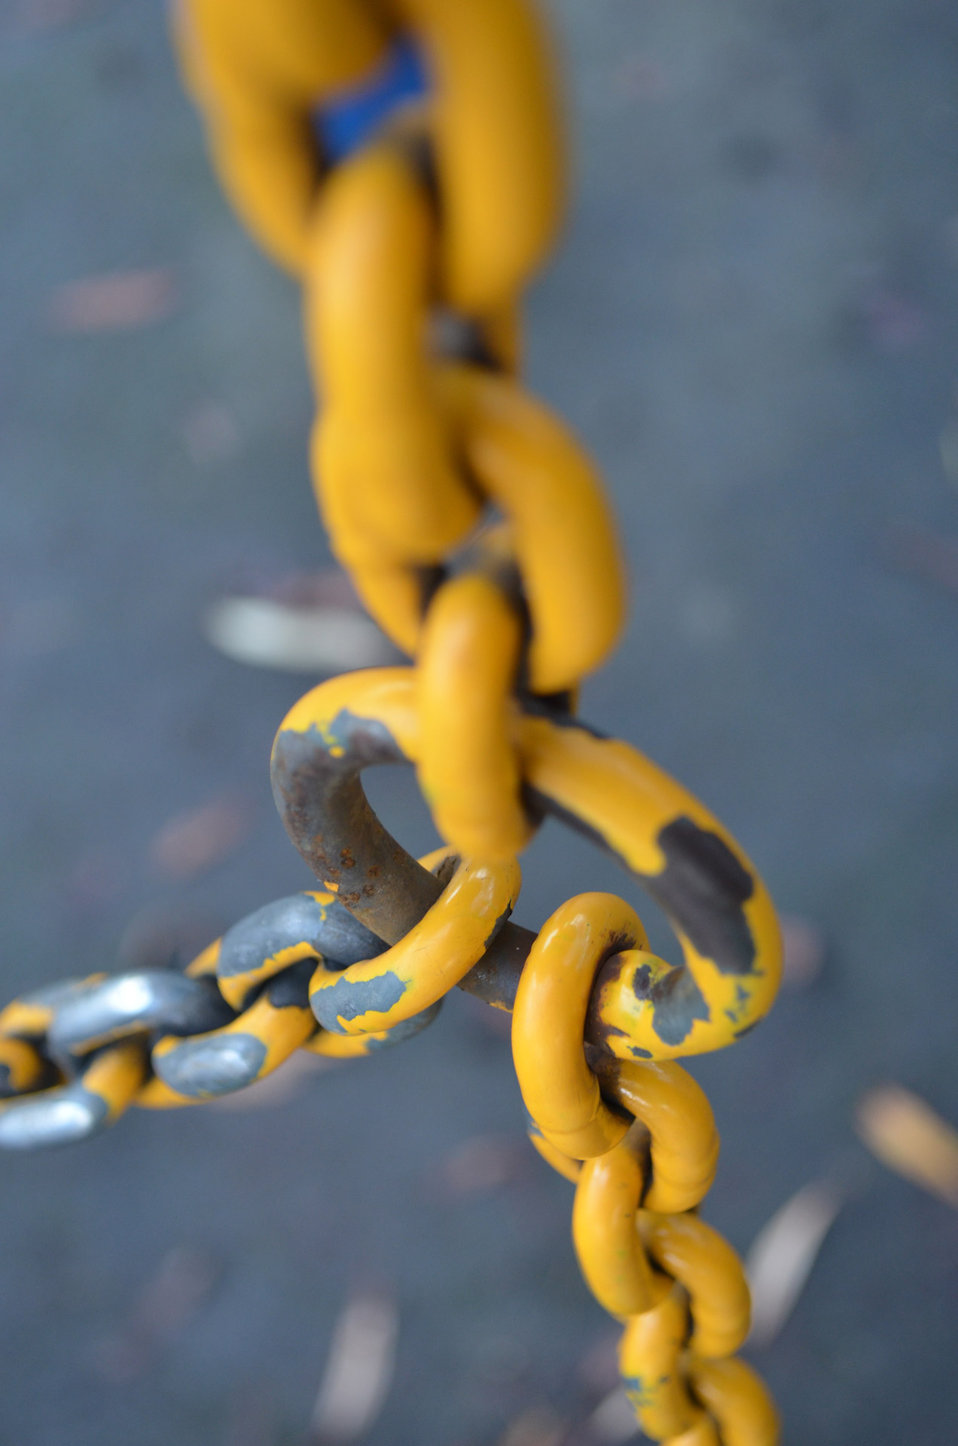 Yellow iron chain